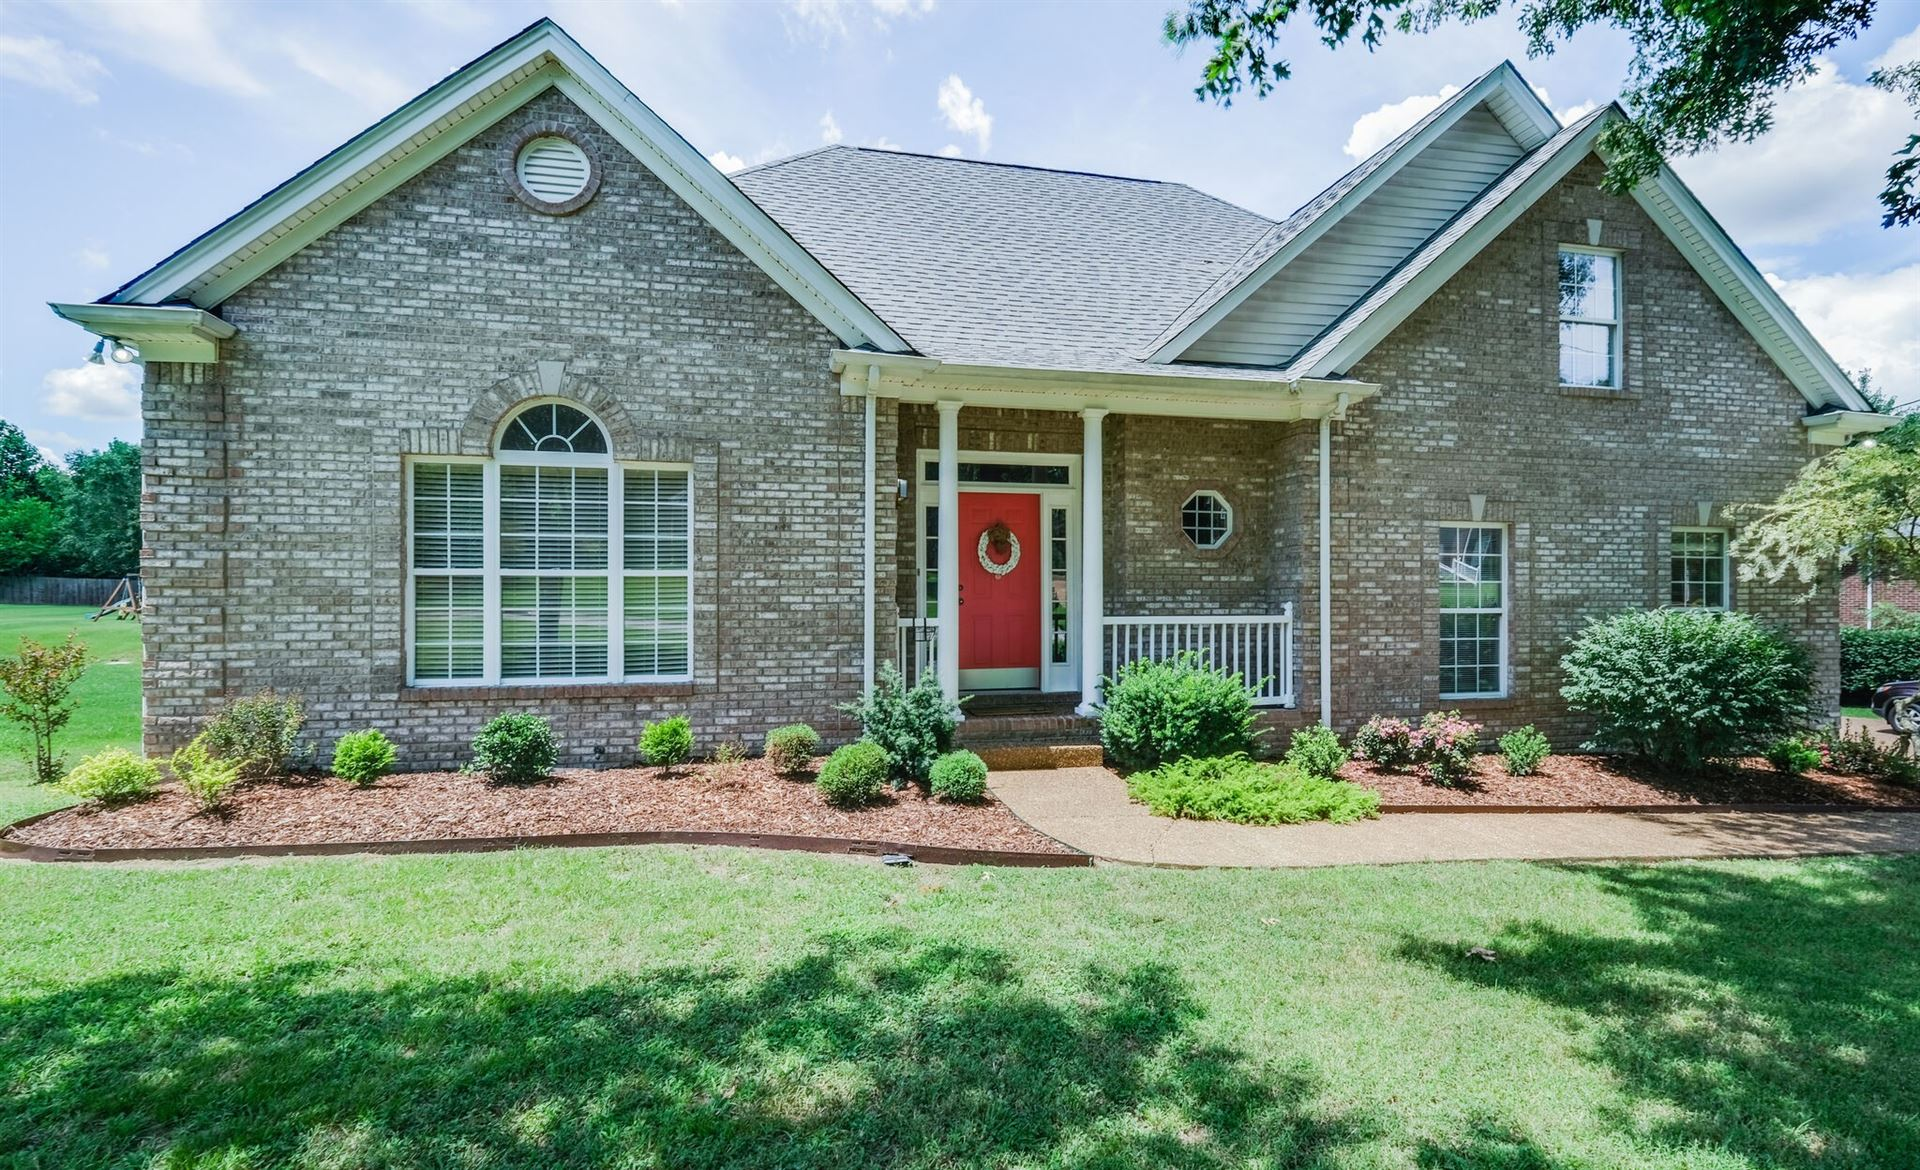 Photo of 305 Baronswood Dr, Nolensville, TN 37135 (MLS # 2173750)